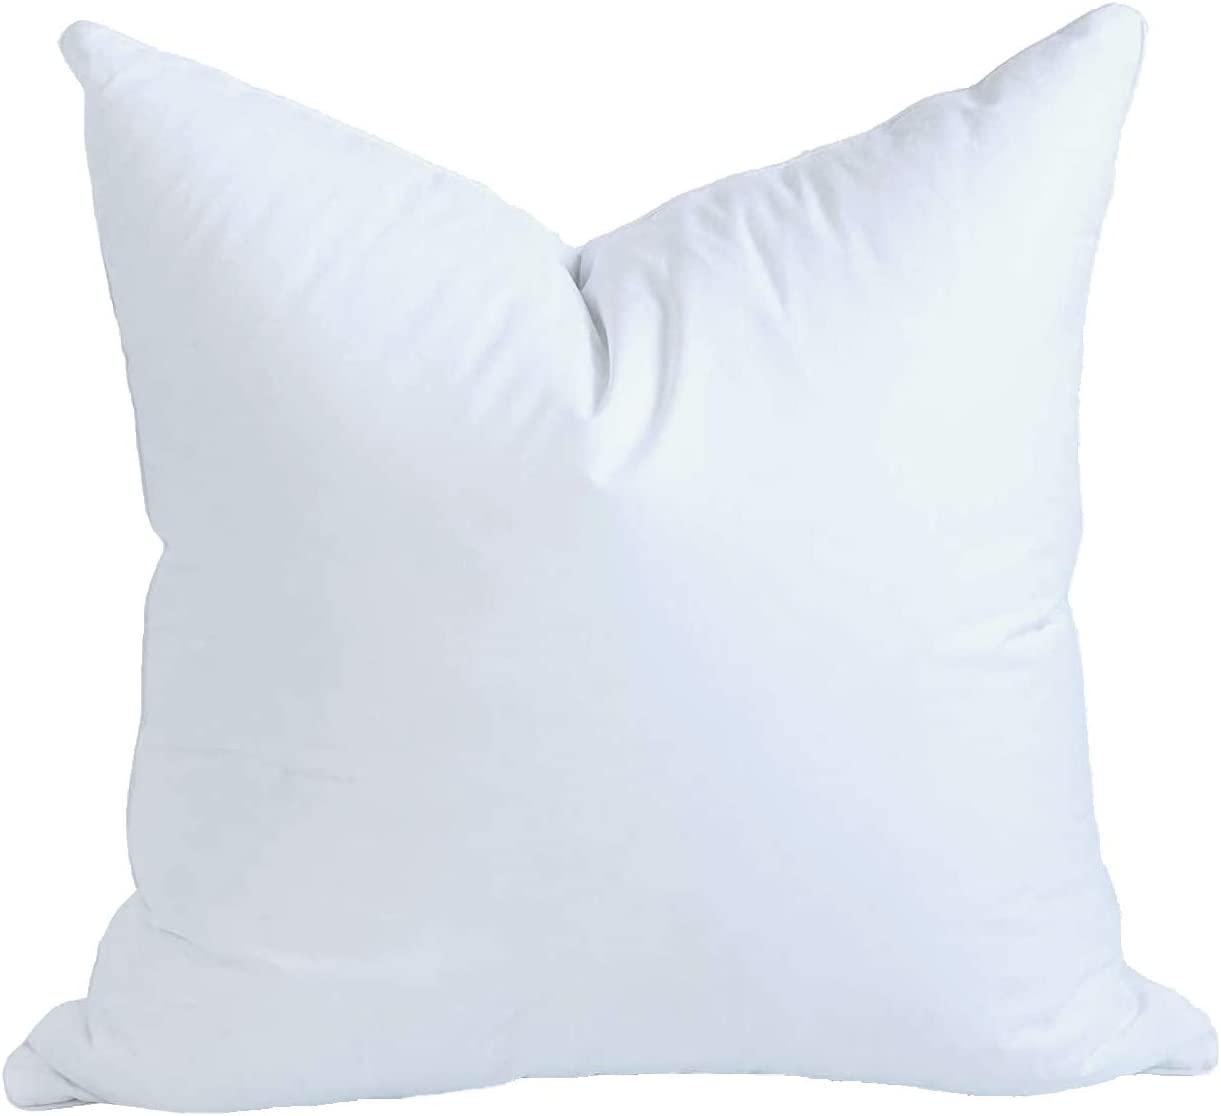 """MoonRest 26x26 Inch Synthetic Down Alternative Square Pillow Insert Form Stuffer for Sofa Shams, Decorative Throw Pillow, Cushion and Bed Pillow Stuffing - Hypoallergenic 26""""X 26 """""""